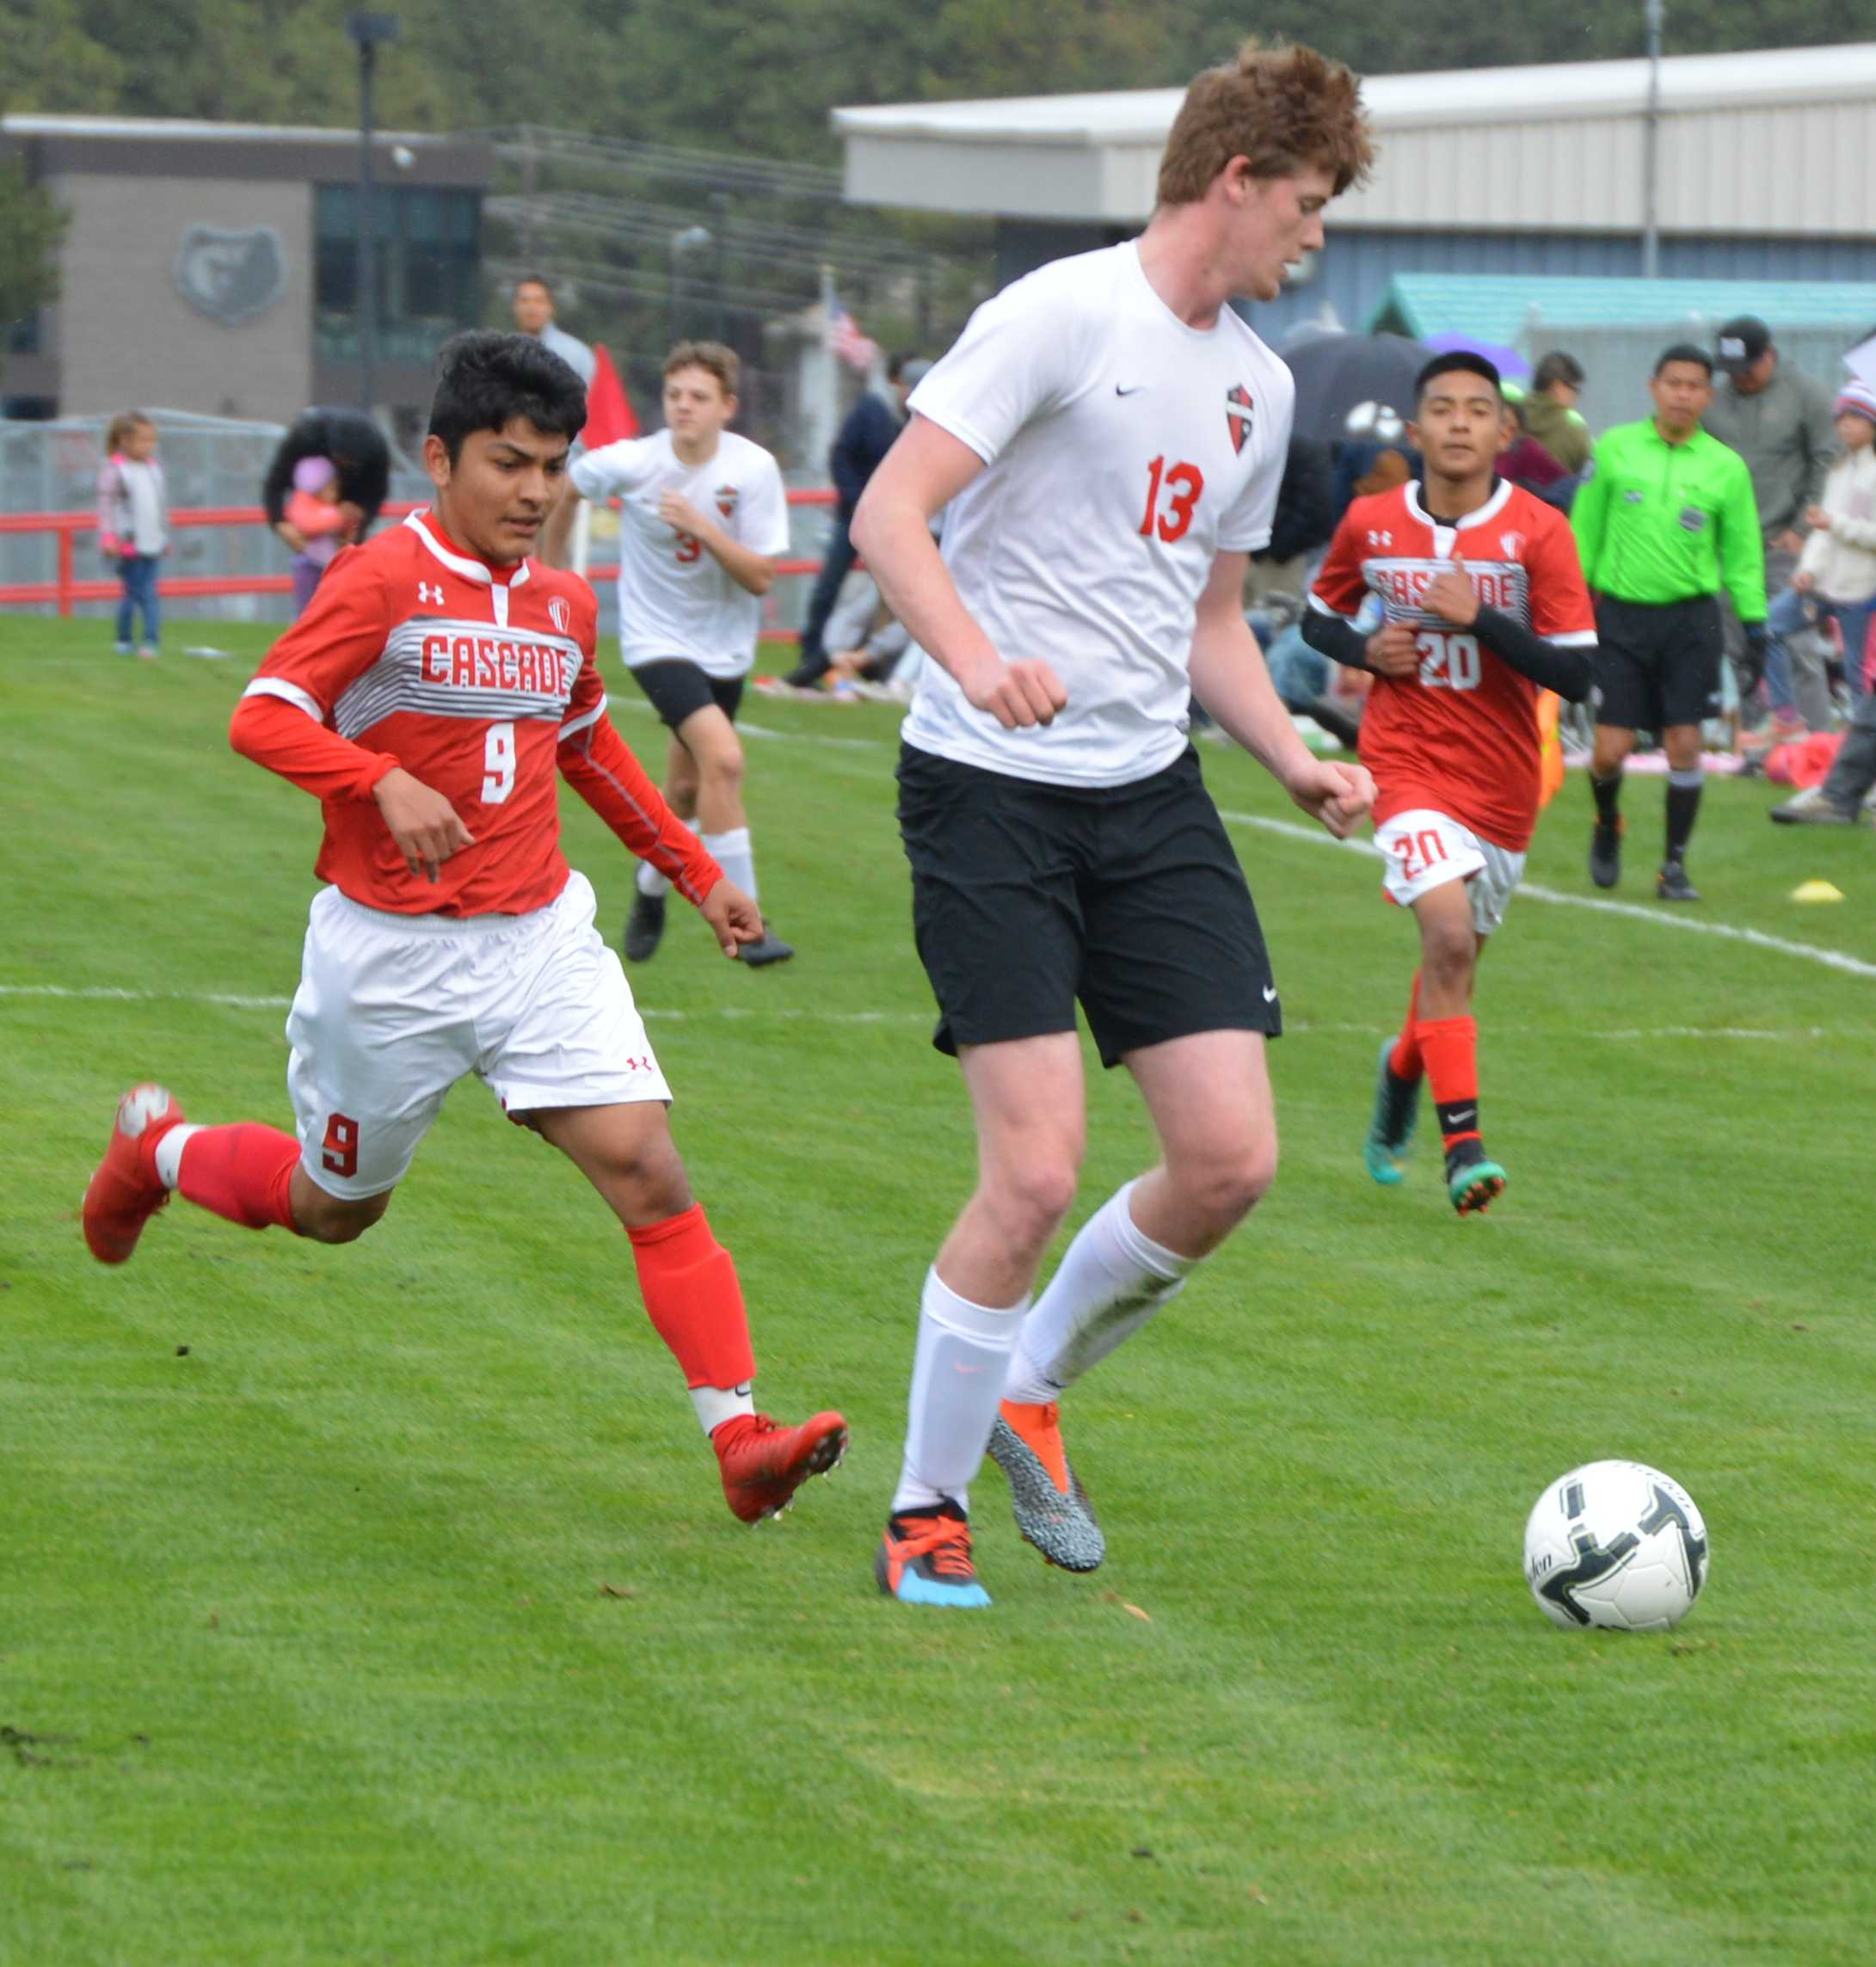 Cascade's Arturo Avila chases down an Omak defender. Avila had two goals during Cascade's match with Omak.